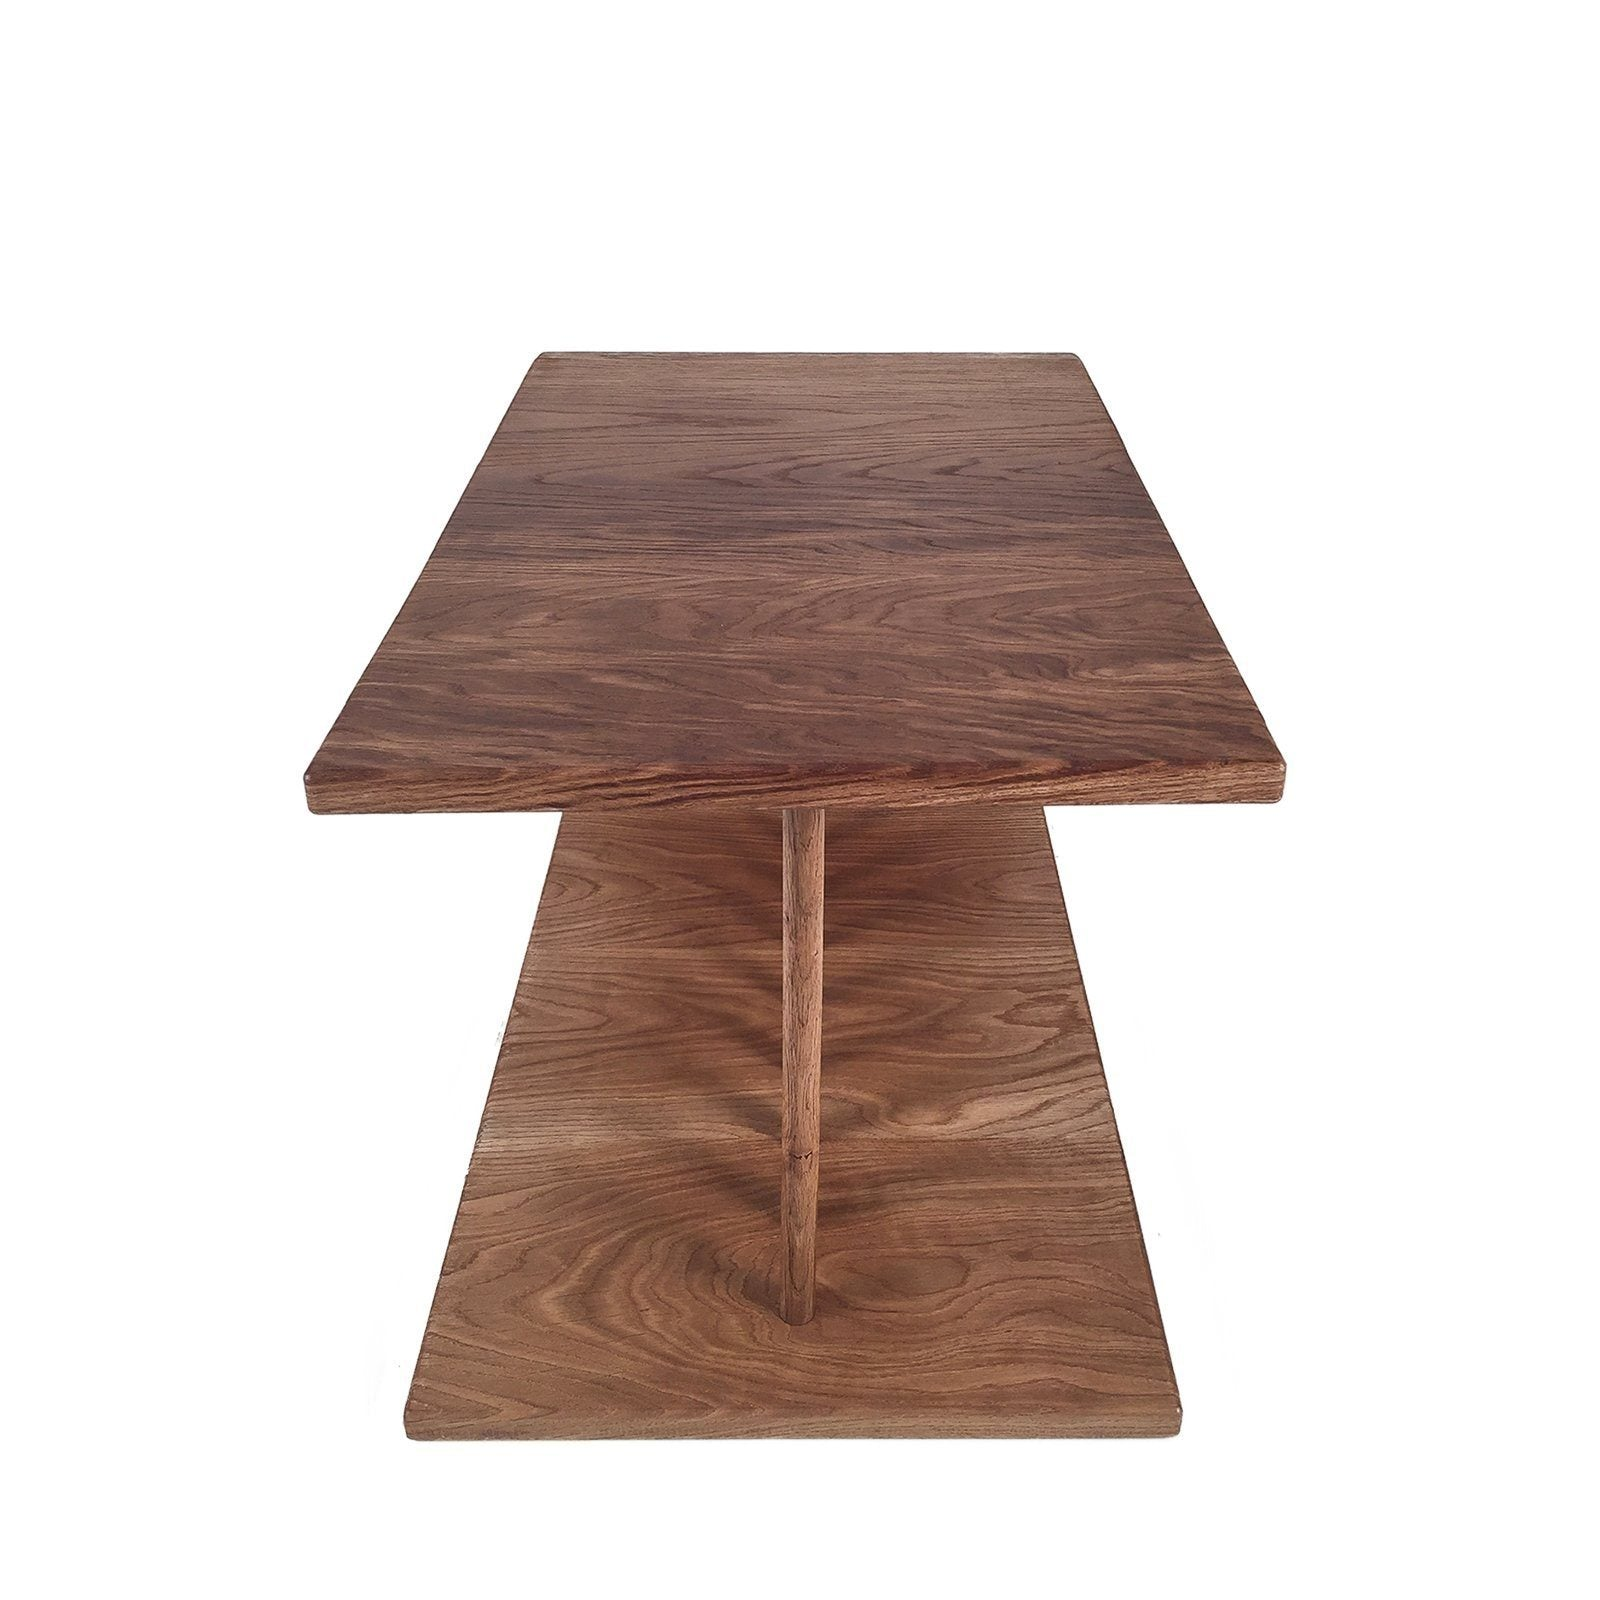 Tables U003e Coffee Table Rectangular   The Euclid Coffee Table By Peg  Woodworking ... Amazing Design